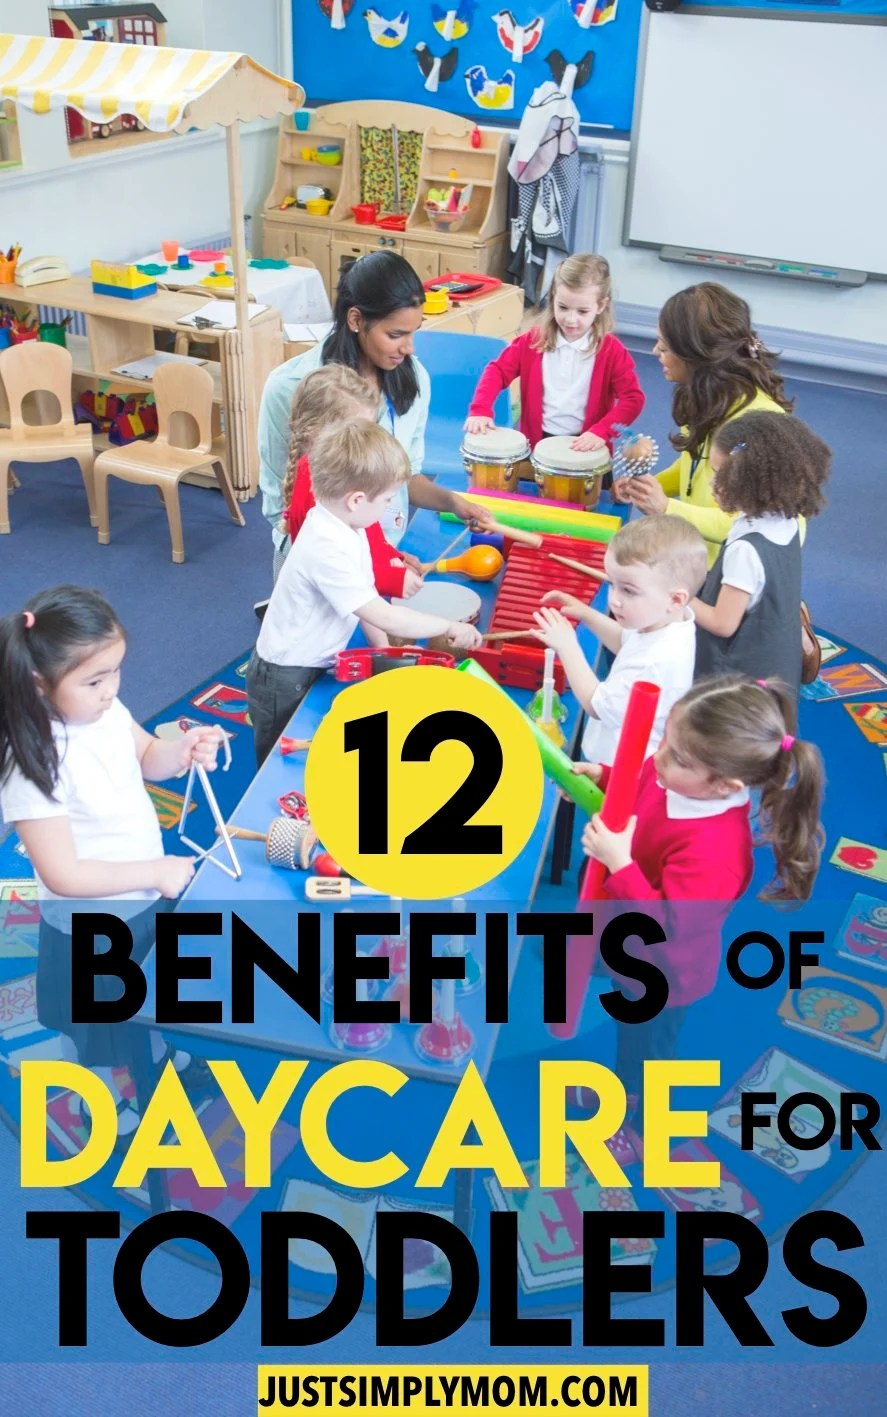 13 Reasons Why I Actually Like Daycare for My Toddler